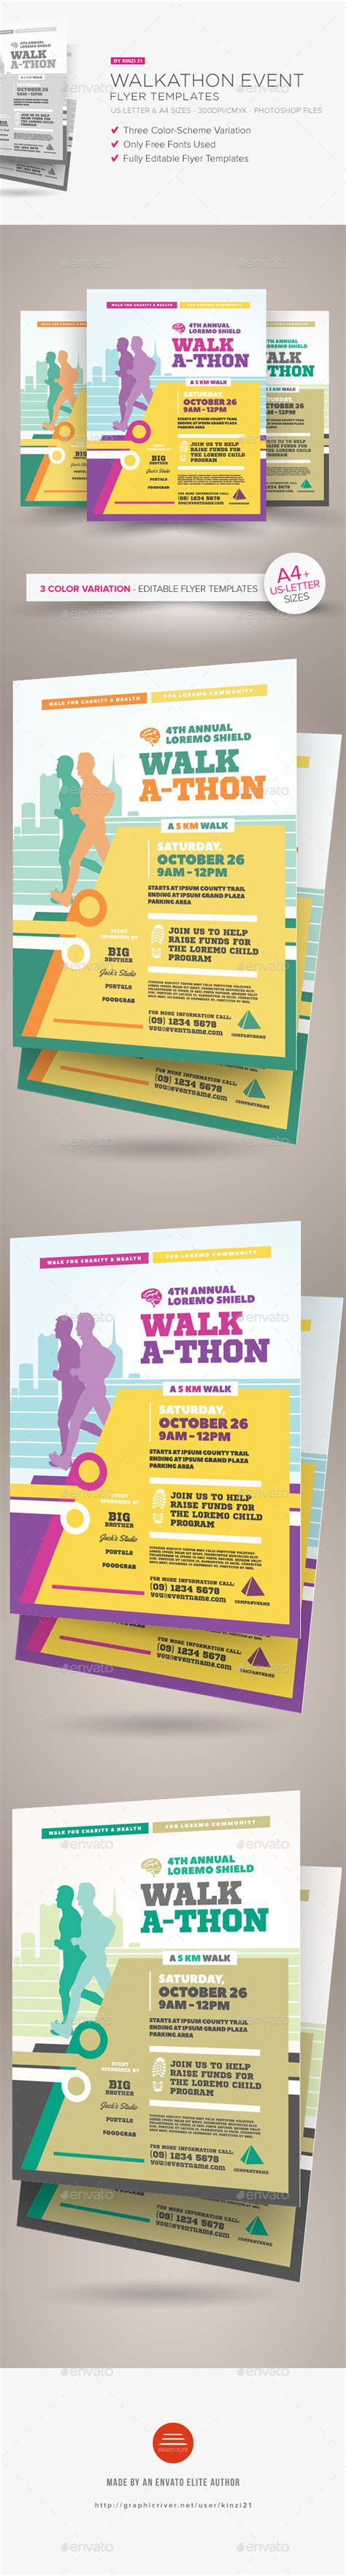 Walkathon Event Flyer Templates By Kinzi21 Graphicriver Walk A Thon Flyer Template